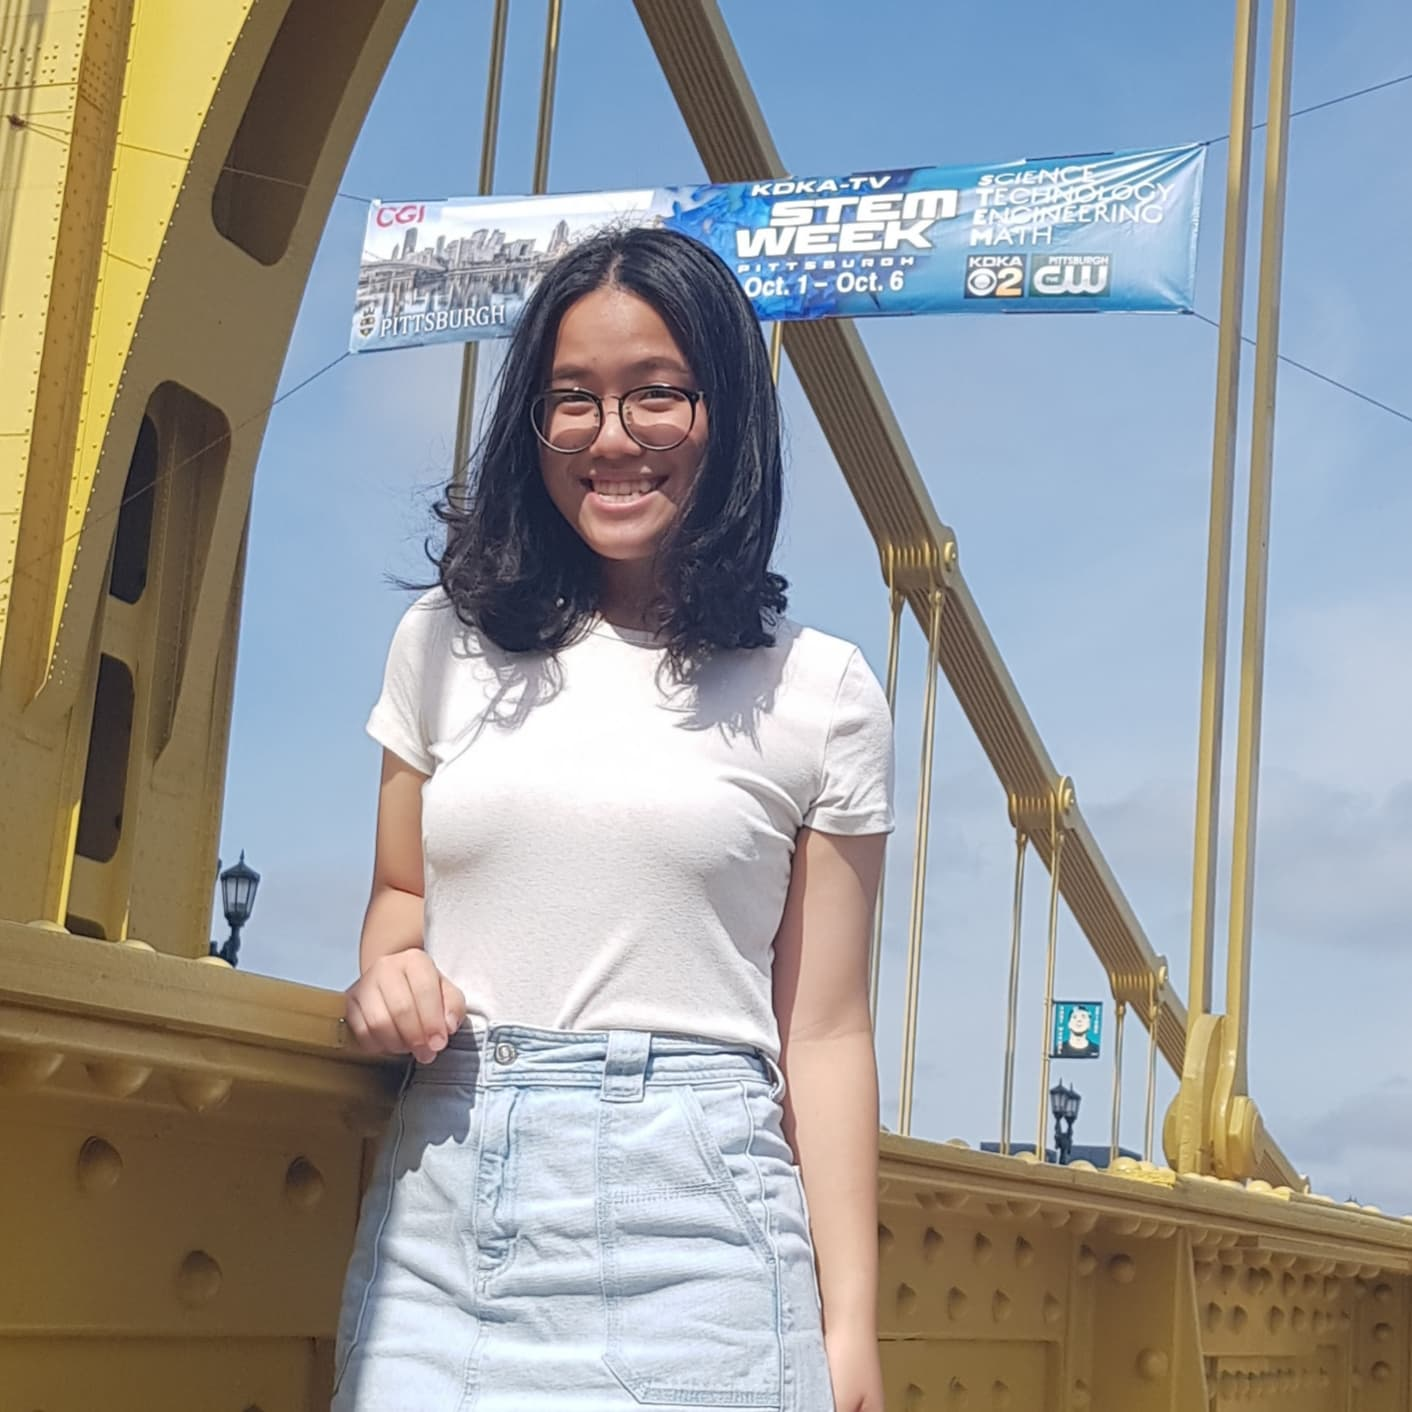 Name : Chanaradee Leelamanthep   Graduation   year : 2023   Majors : Information systems   Interests : I'm interested in working with computer science, art, and psychology.   Project   area : Robotics, web design, and virtual reality   Fun   fact : I'm scared of animals.